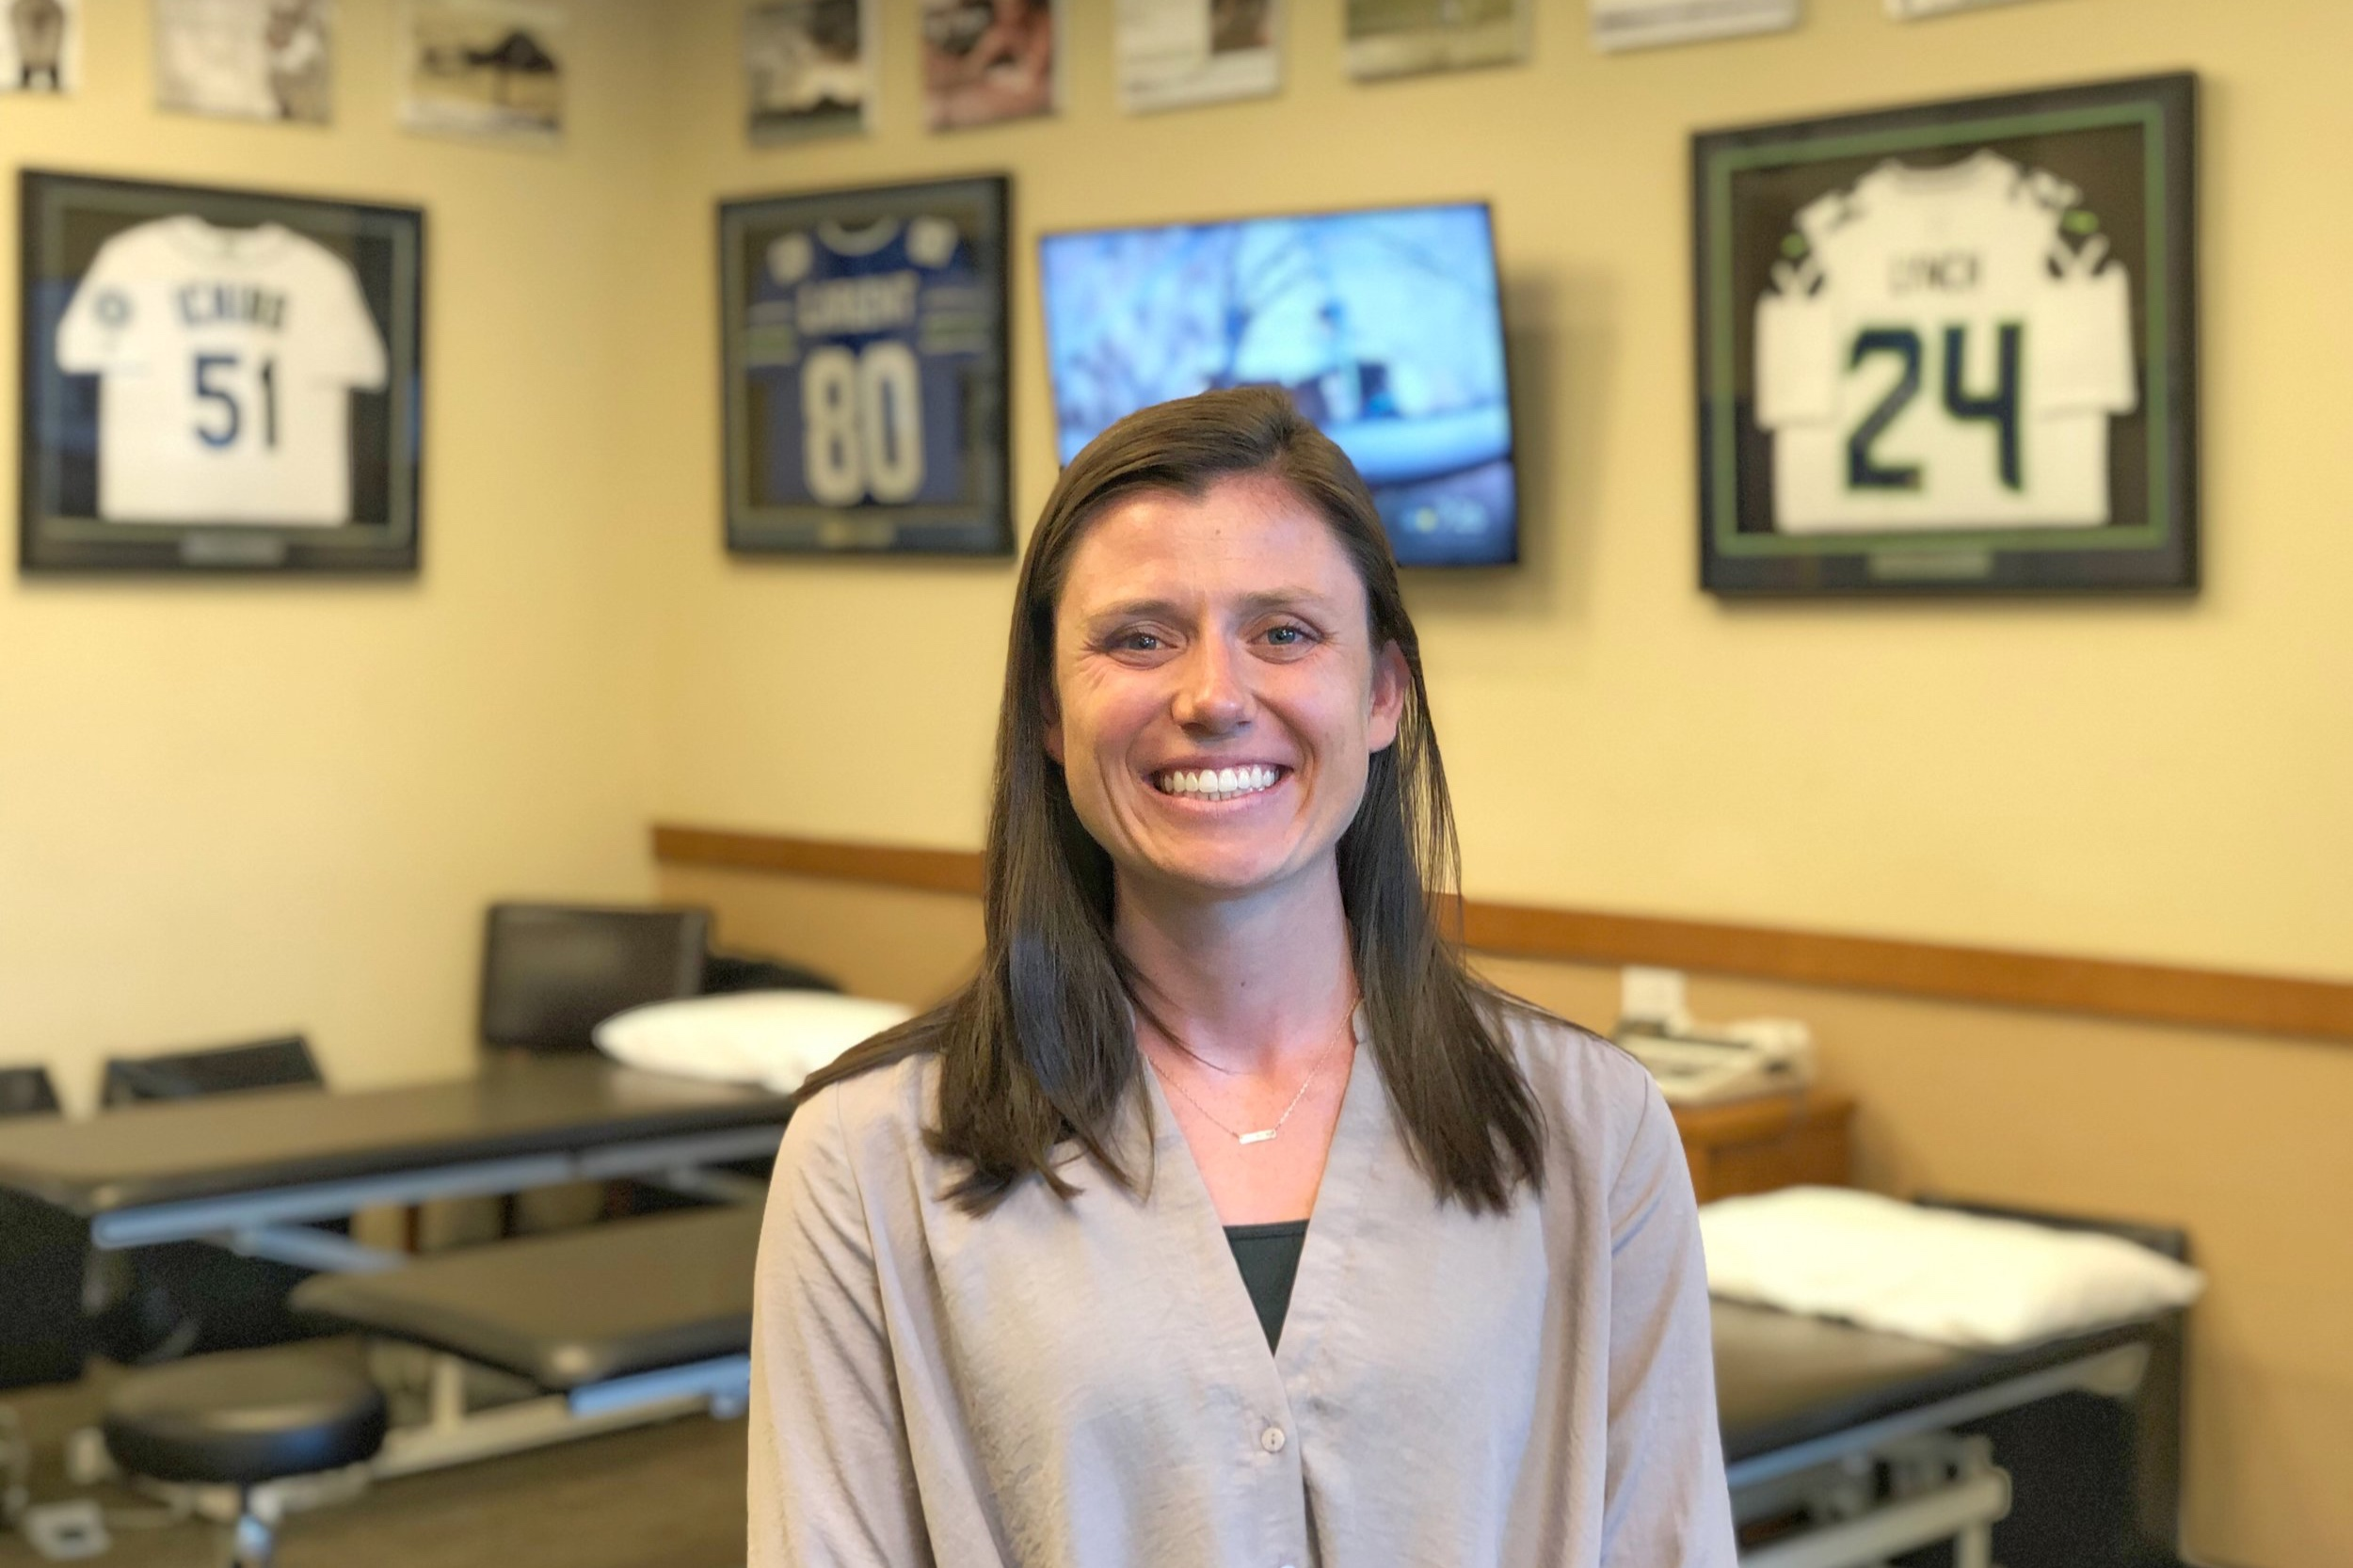 Kerri SmithPT, DPT - Kerri grew up in Kirkland, WA and attended The Overlake School where she played soccer and lacrosse. Kerri met Ben Wobker, Mandie Majerus, and the staff at Lake Washington Physical Therapy initially as a patient where they gave her the tools to continue being active. In the following years, she shadowed Ben and Mandie, which sparked her interest in the career of physical therapy……Continue »